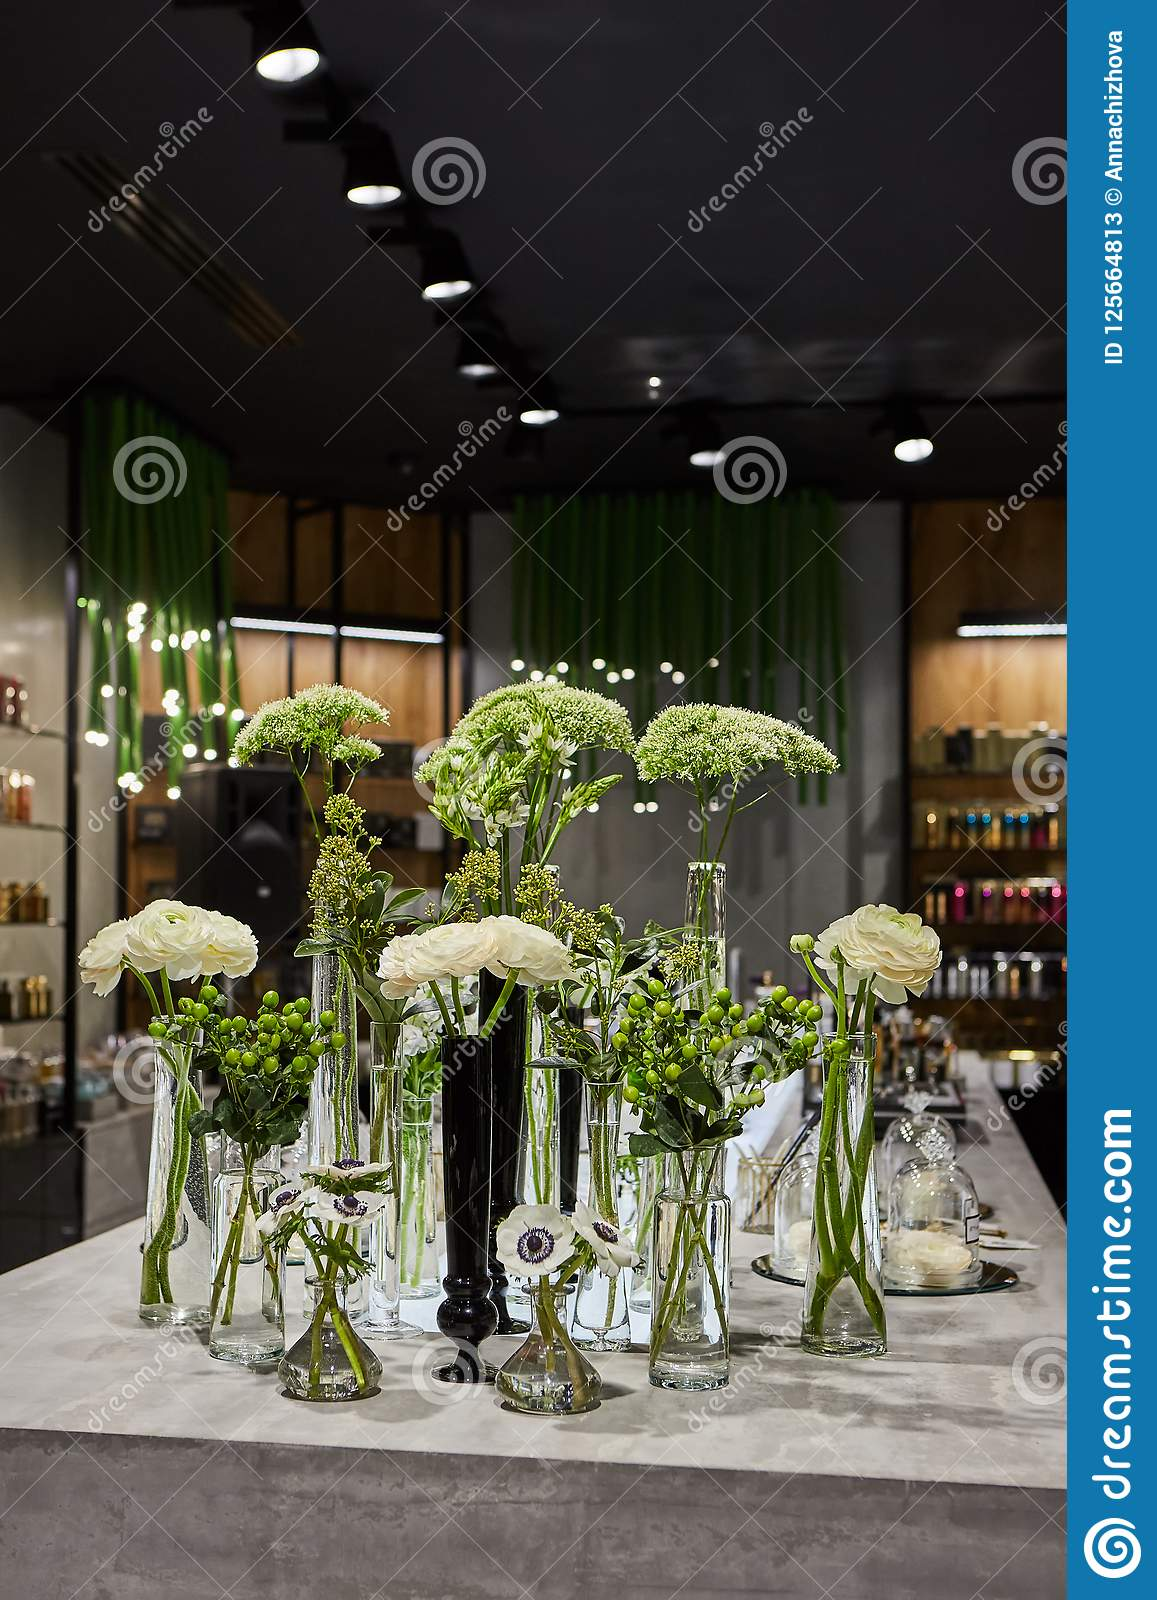 Spa Salon Shopping Garden Center Flowers Decorating For Holiday Copy Space Stock Image Image Of Leaf Fresh 125664813